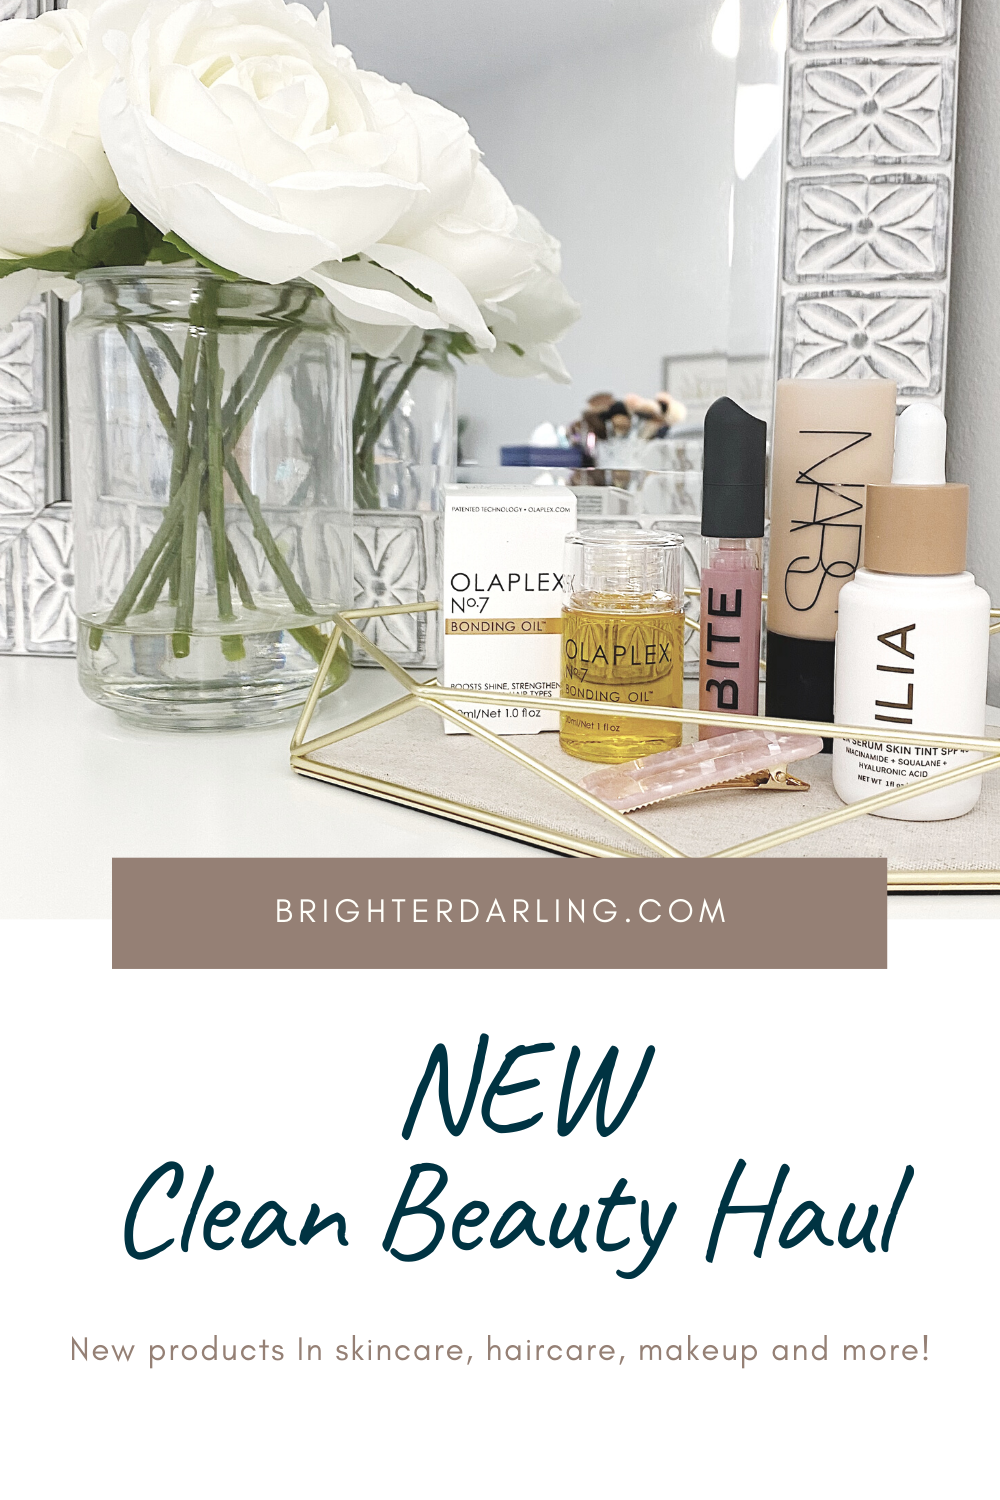 NEW Clean Beauty Haul _ Olaplex 7 Oil, NARS Soft Matte Foundation, Ilia Super Serum Skin Tint Foundation